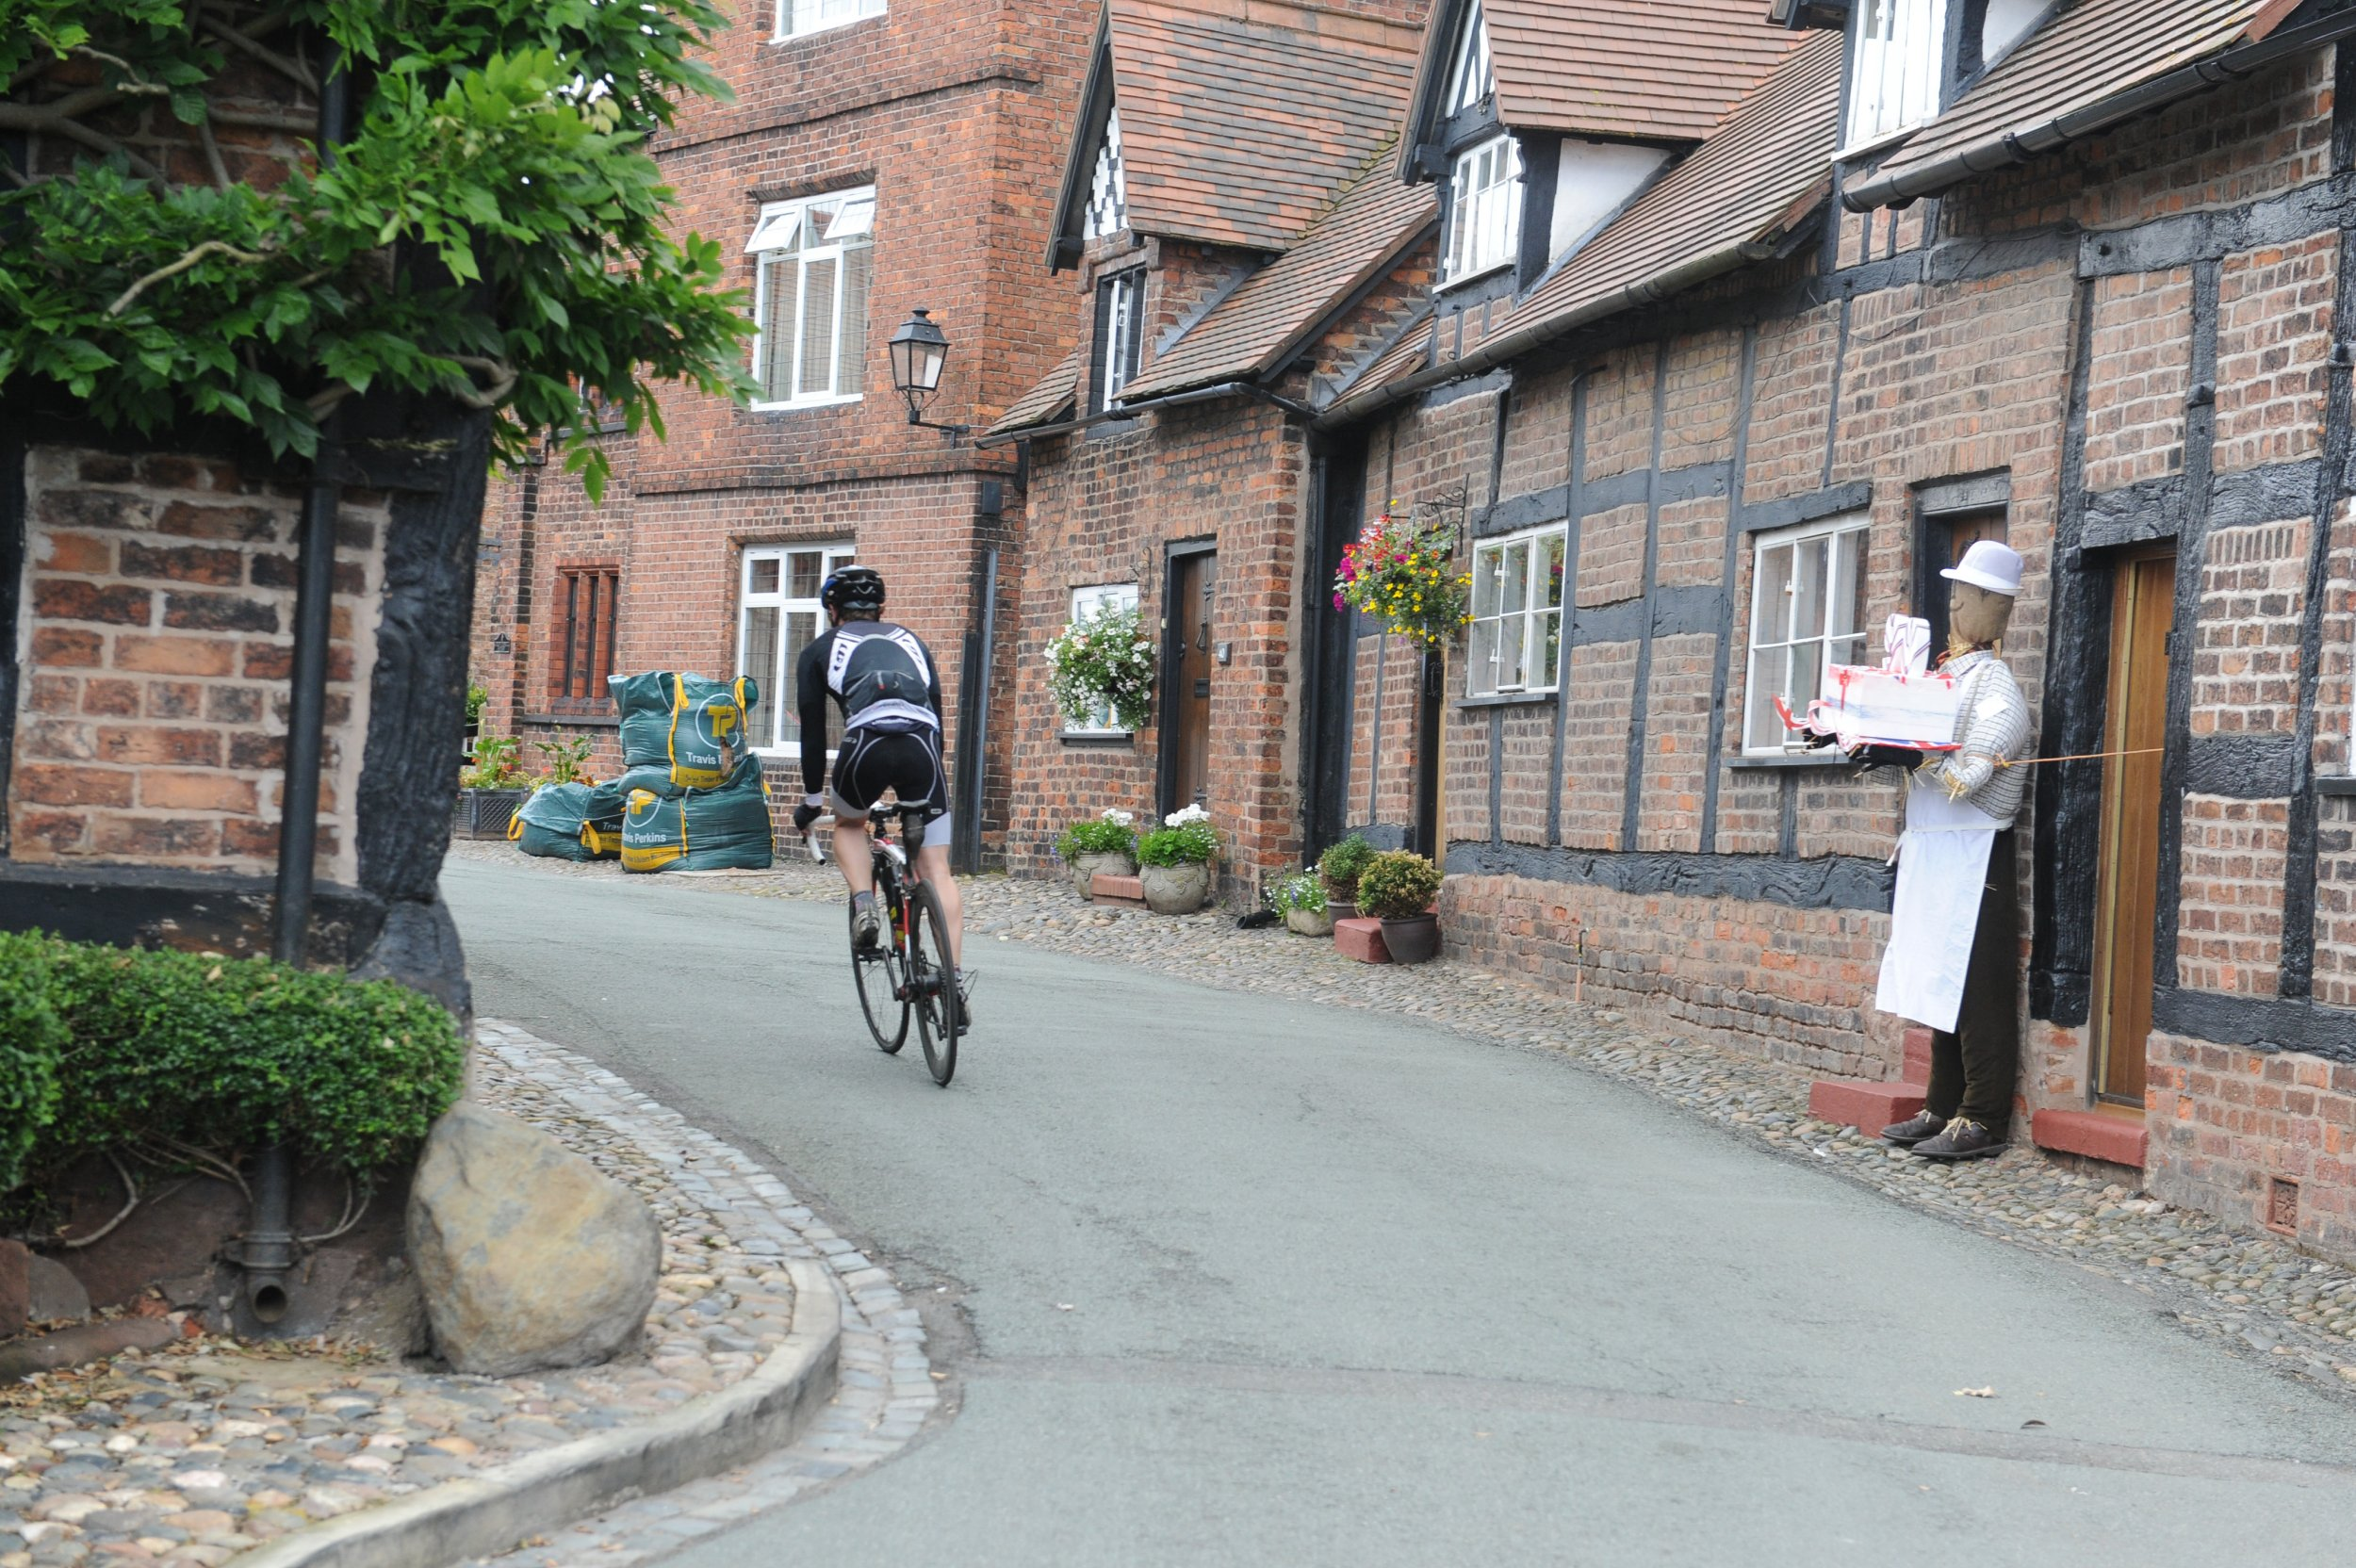 GV of Great Budworth village in Cheshire. Possibly the most beautiful village in Cheshire.